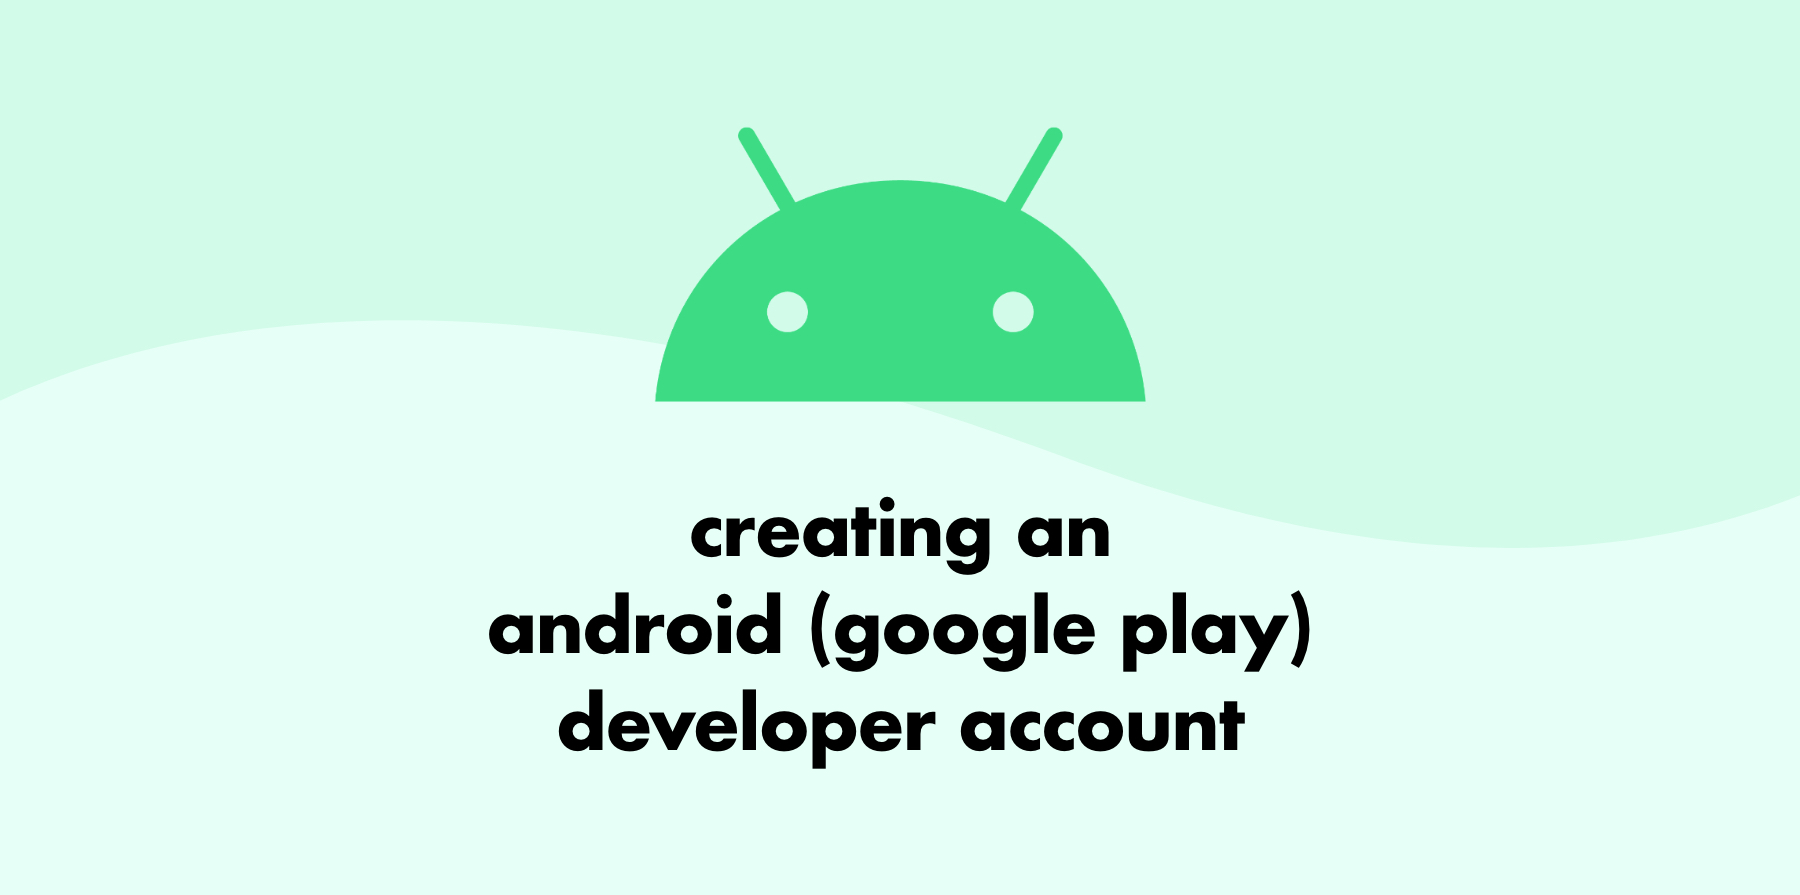 Creating an Android Developer Account Image